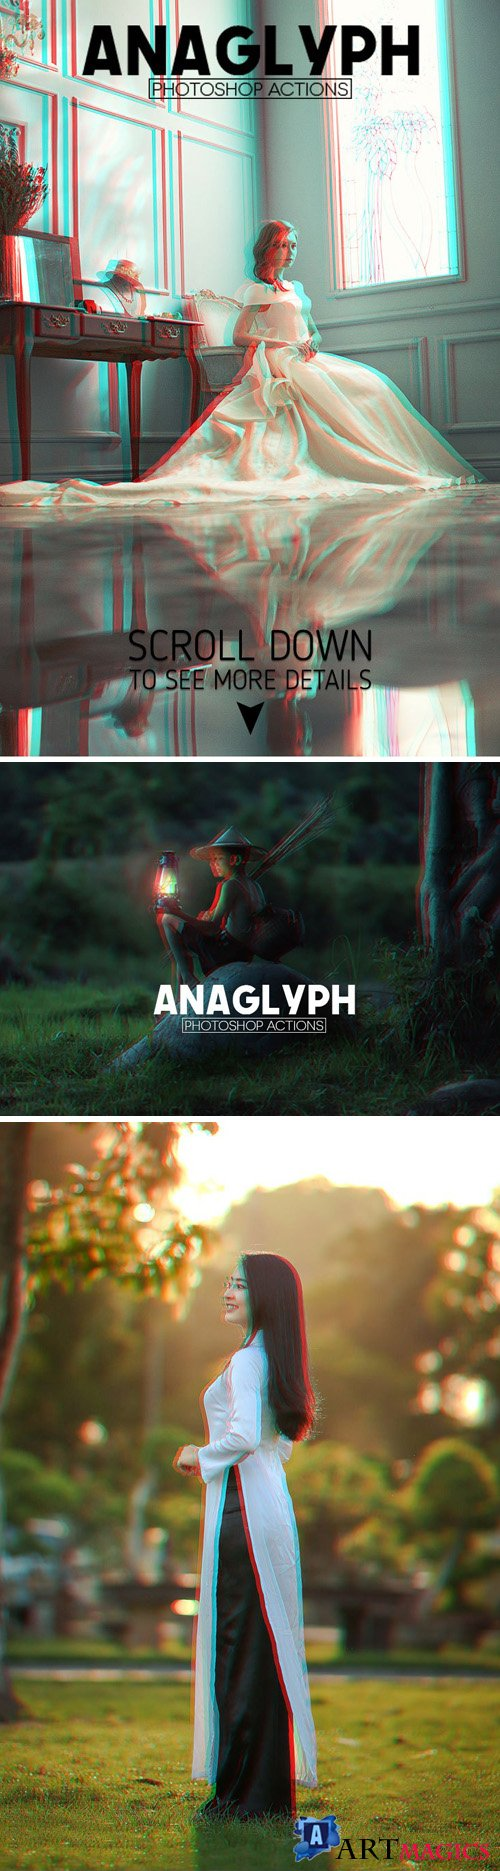 3D Anaglyph Photoshop Actions